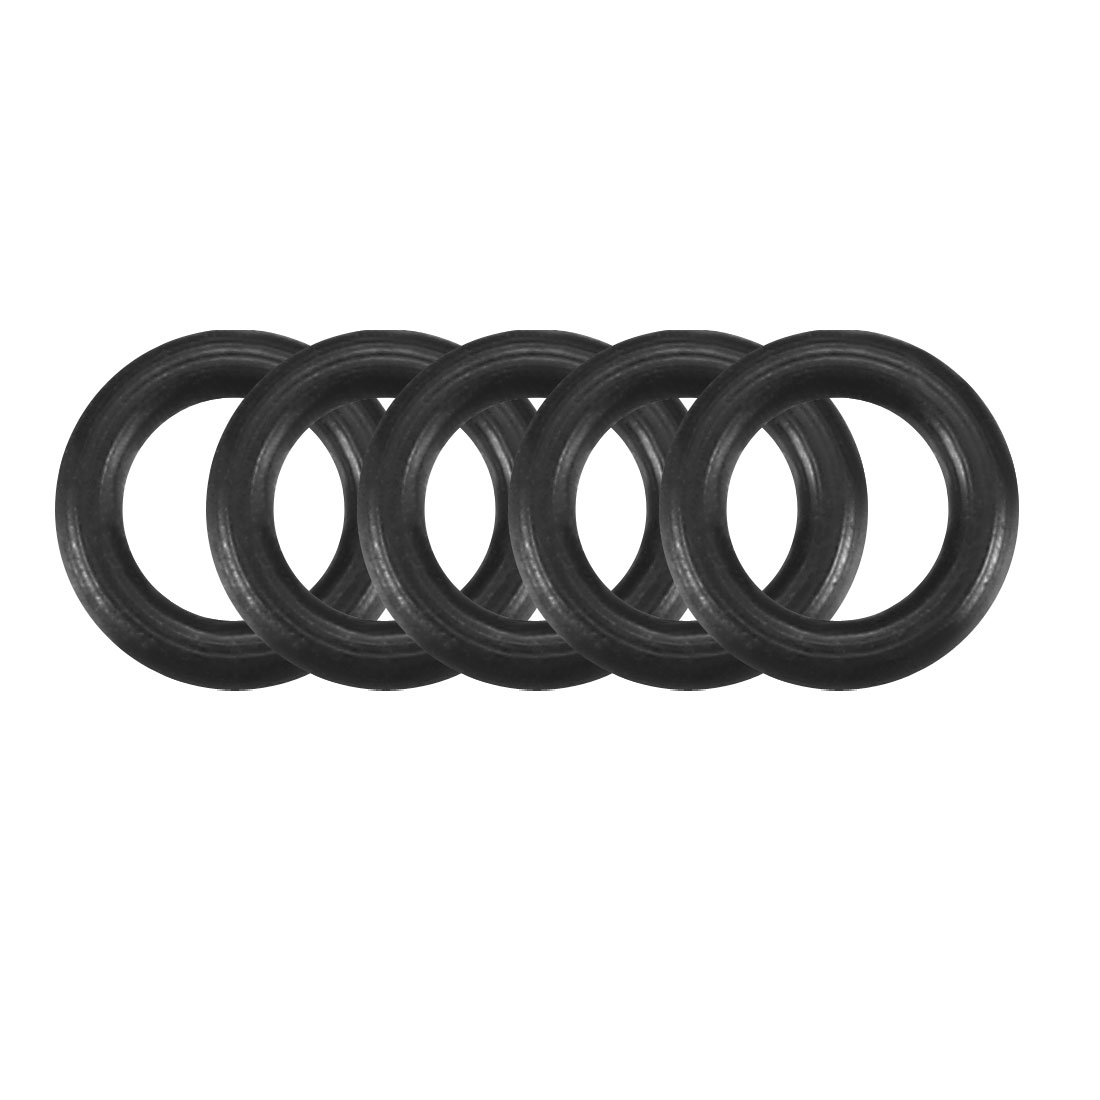 "1/5"" Outside Dia Rubber Gasket Washer Seal Rings 50 Pcs"